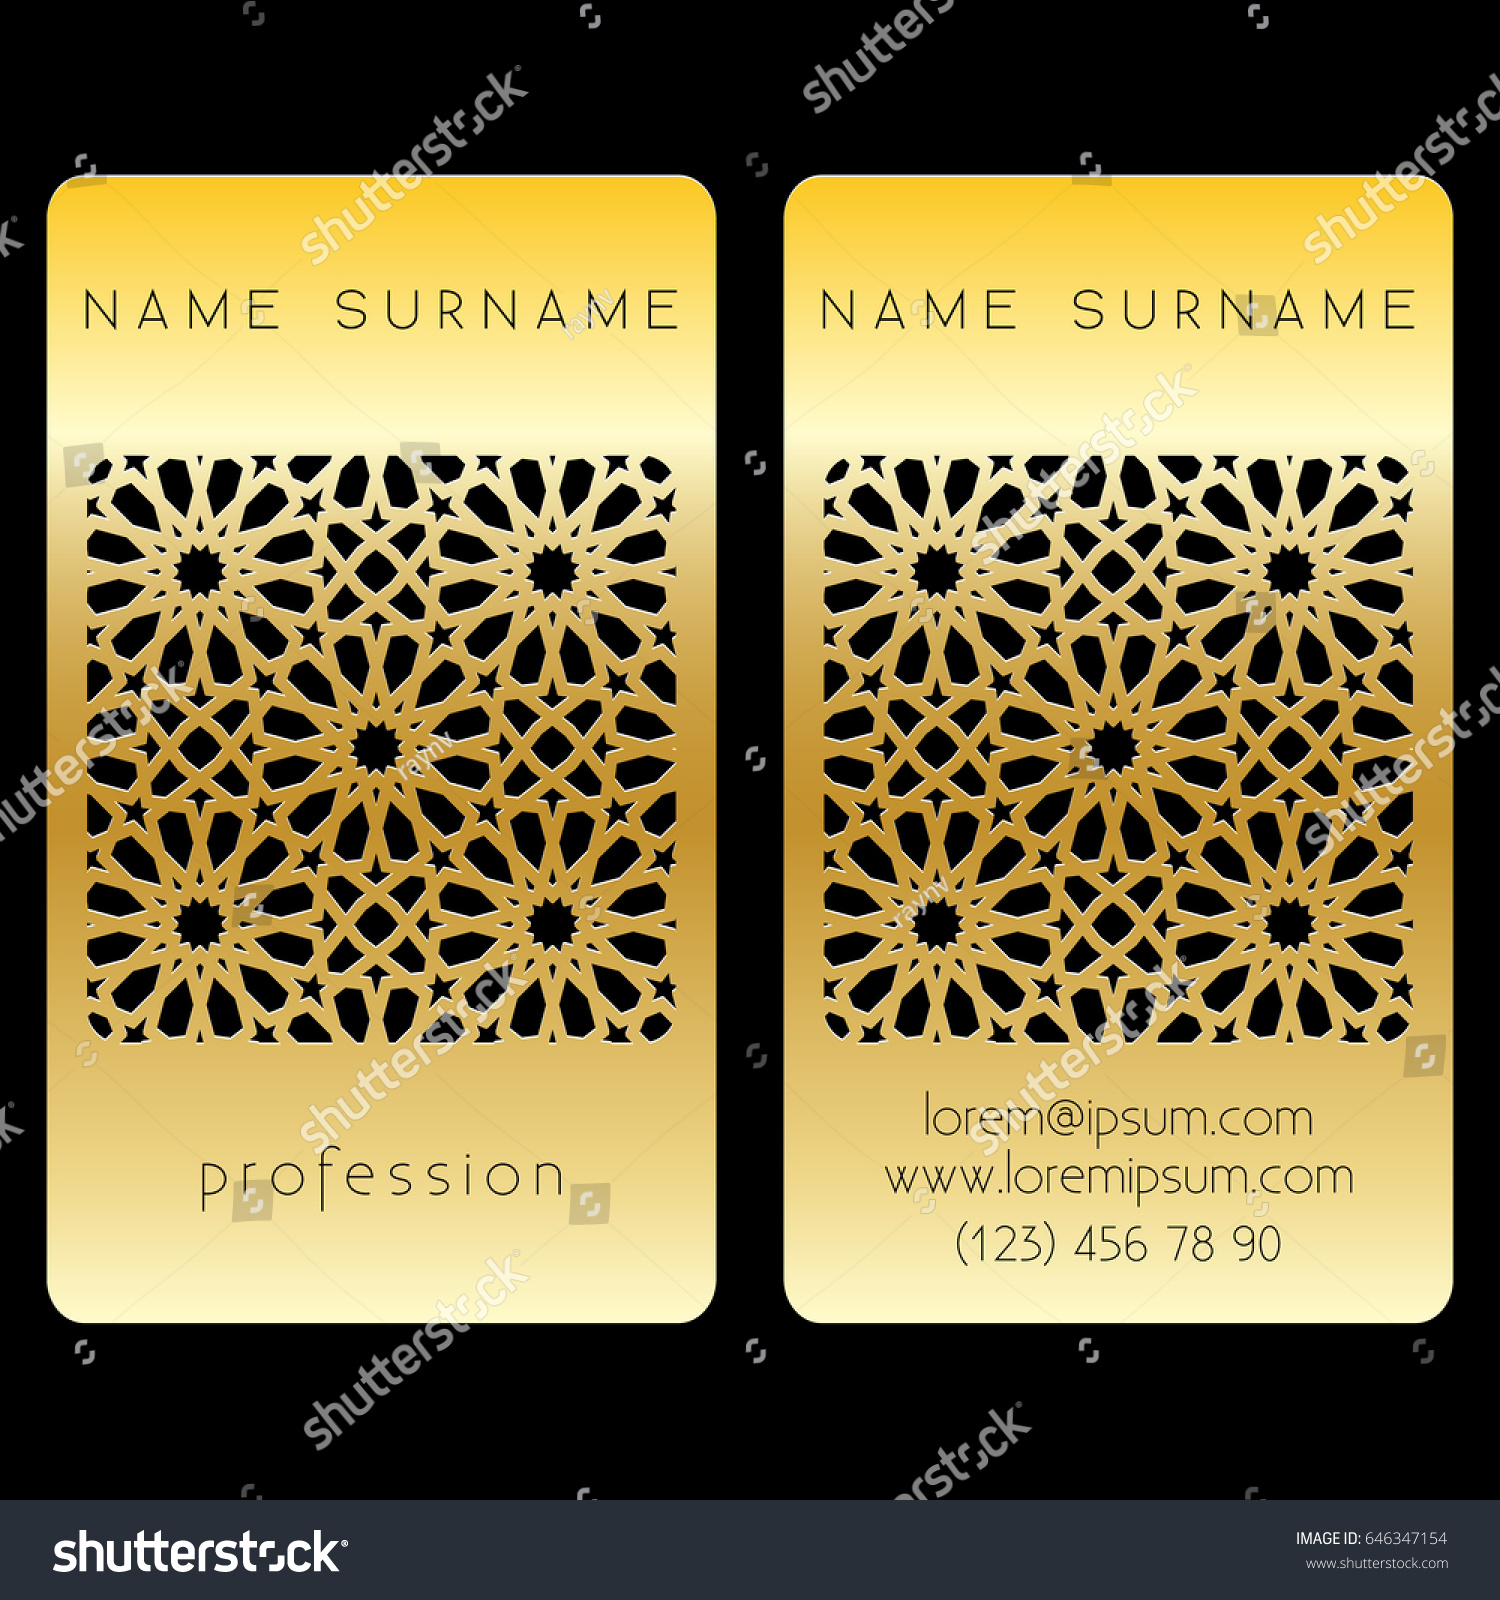 Business card template cut out arabic stock vector 646347154 business card template with a cut out arabic pattern laser cutting eastern gold design magicingreecefo Choice Image